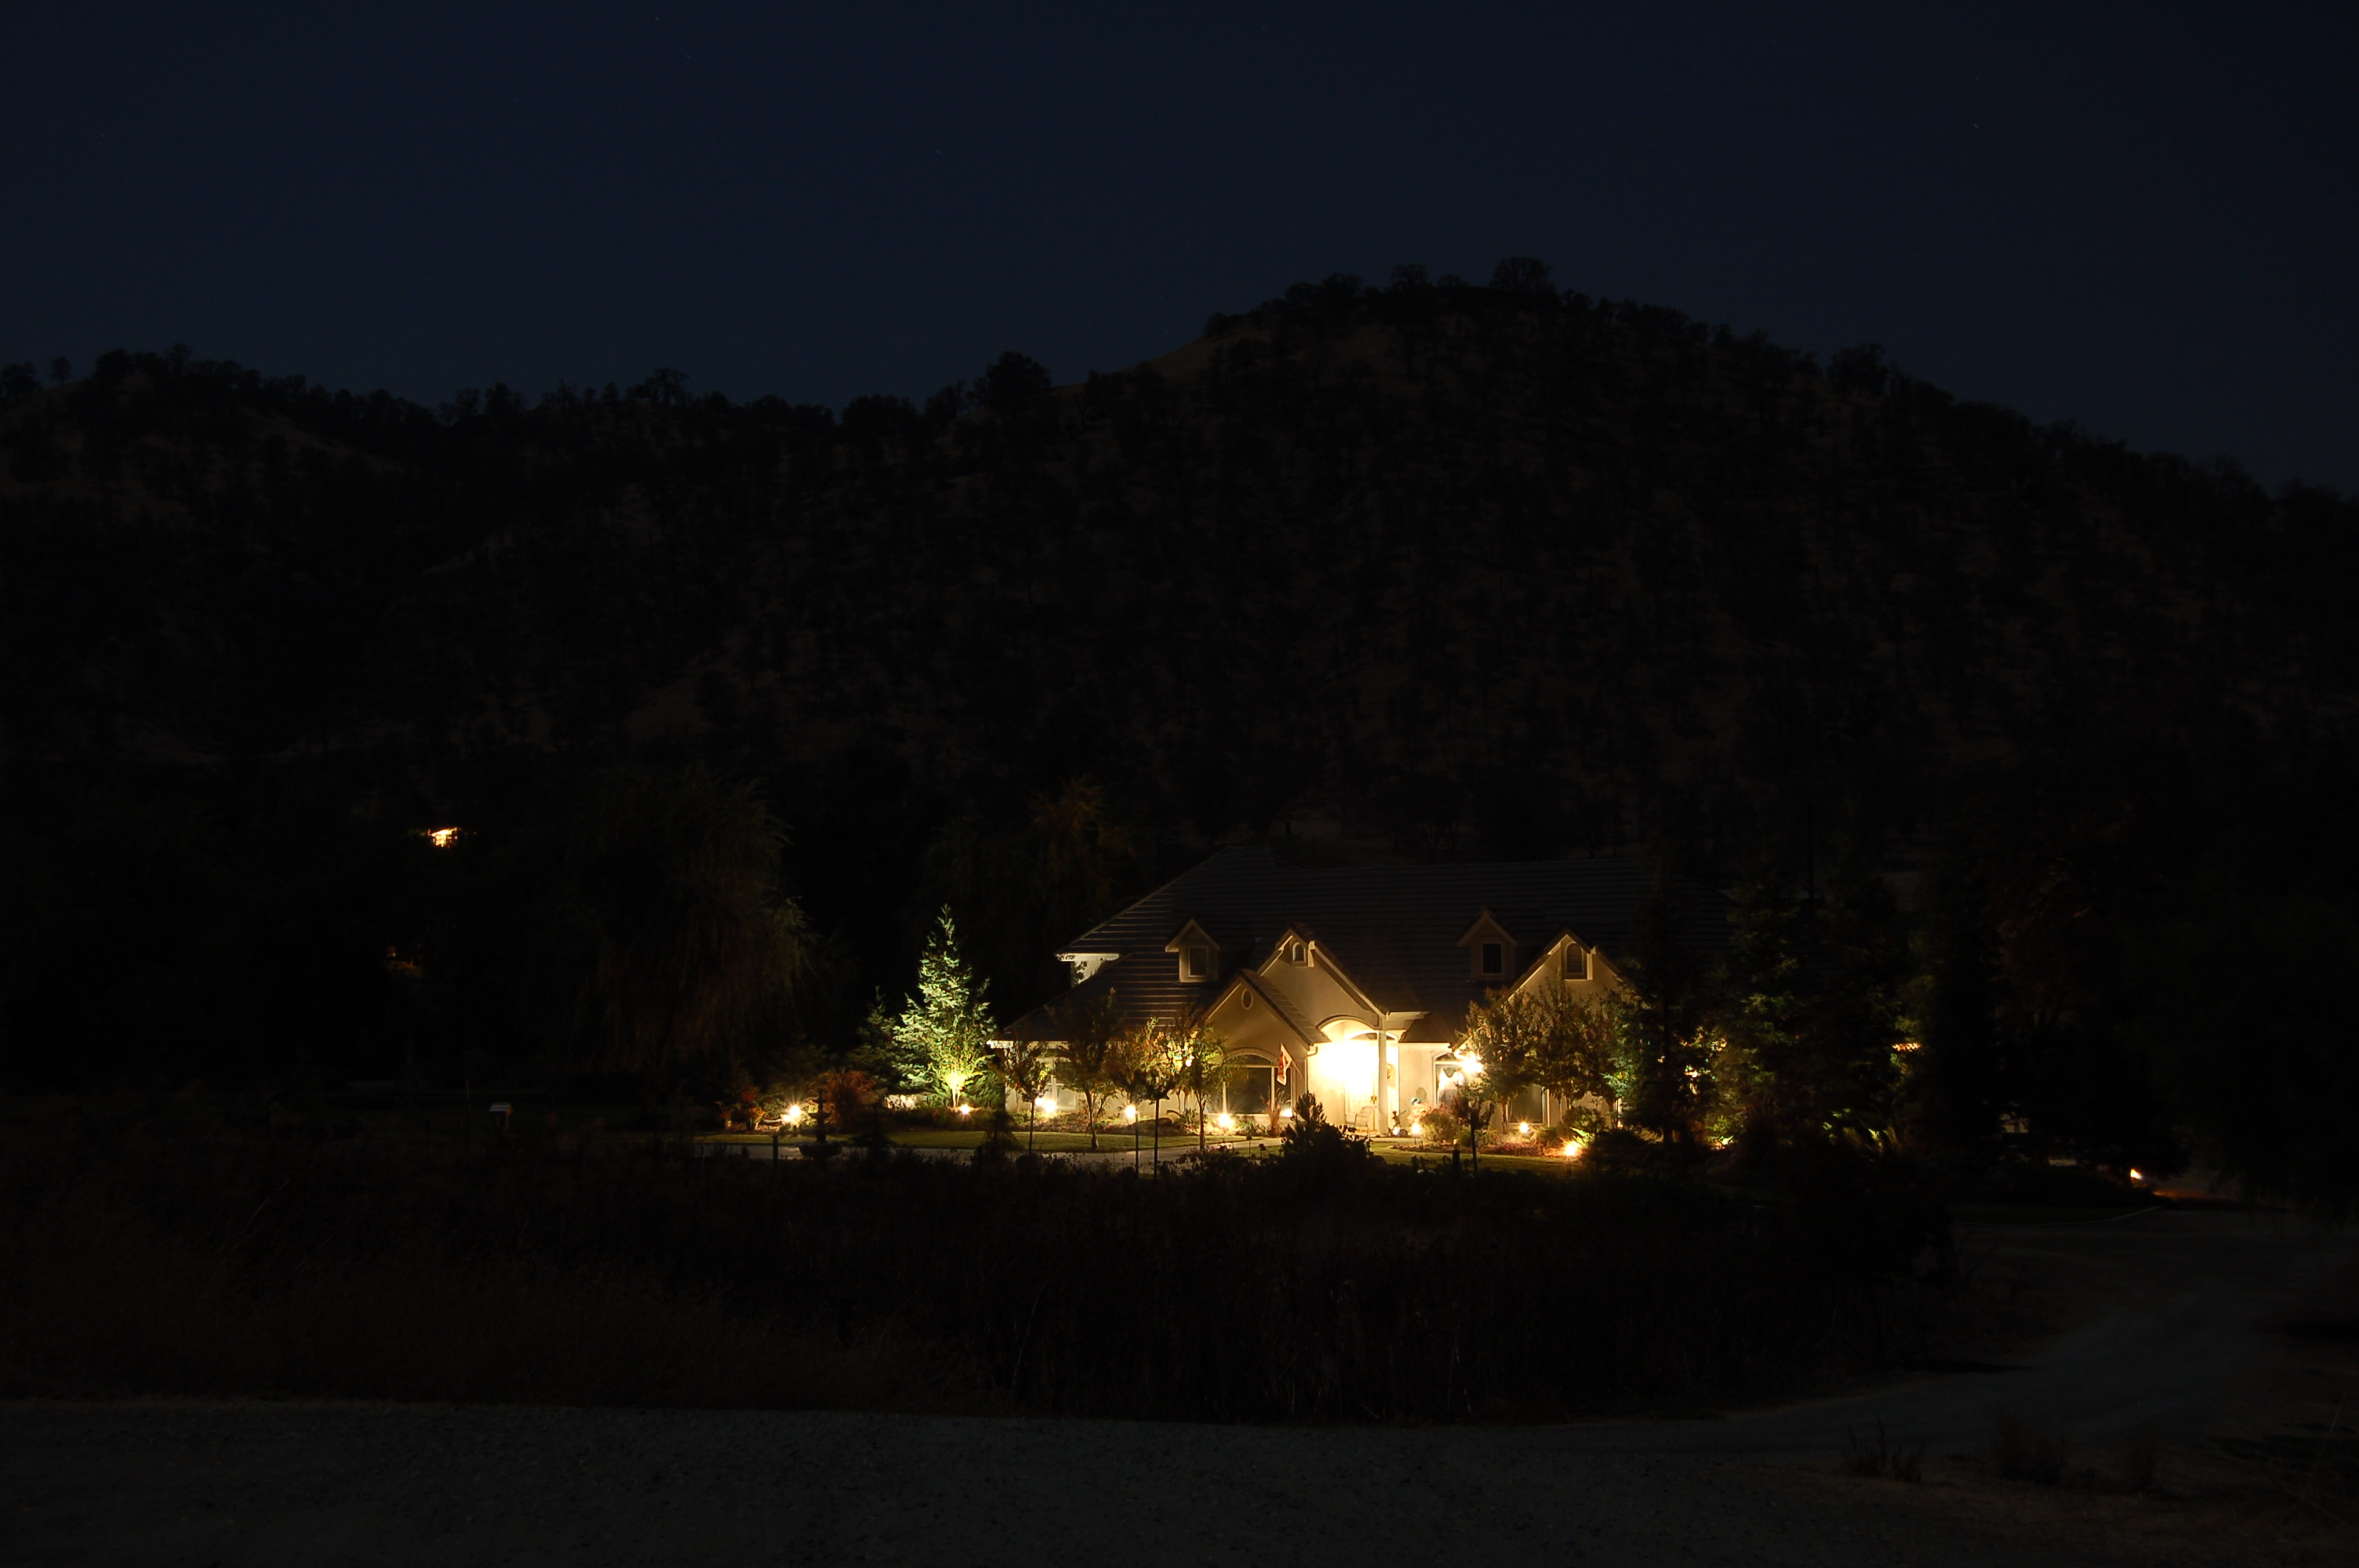 Home Sweet Home, Lights, Mountains, Night, Landscape, HQ Photo